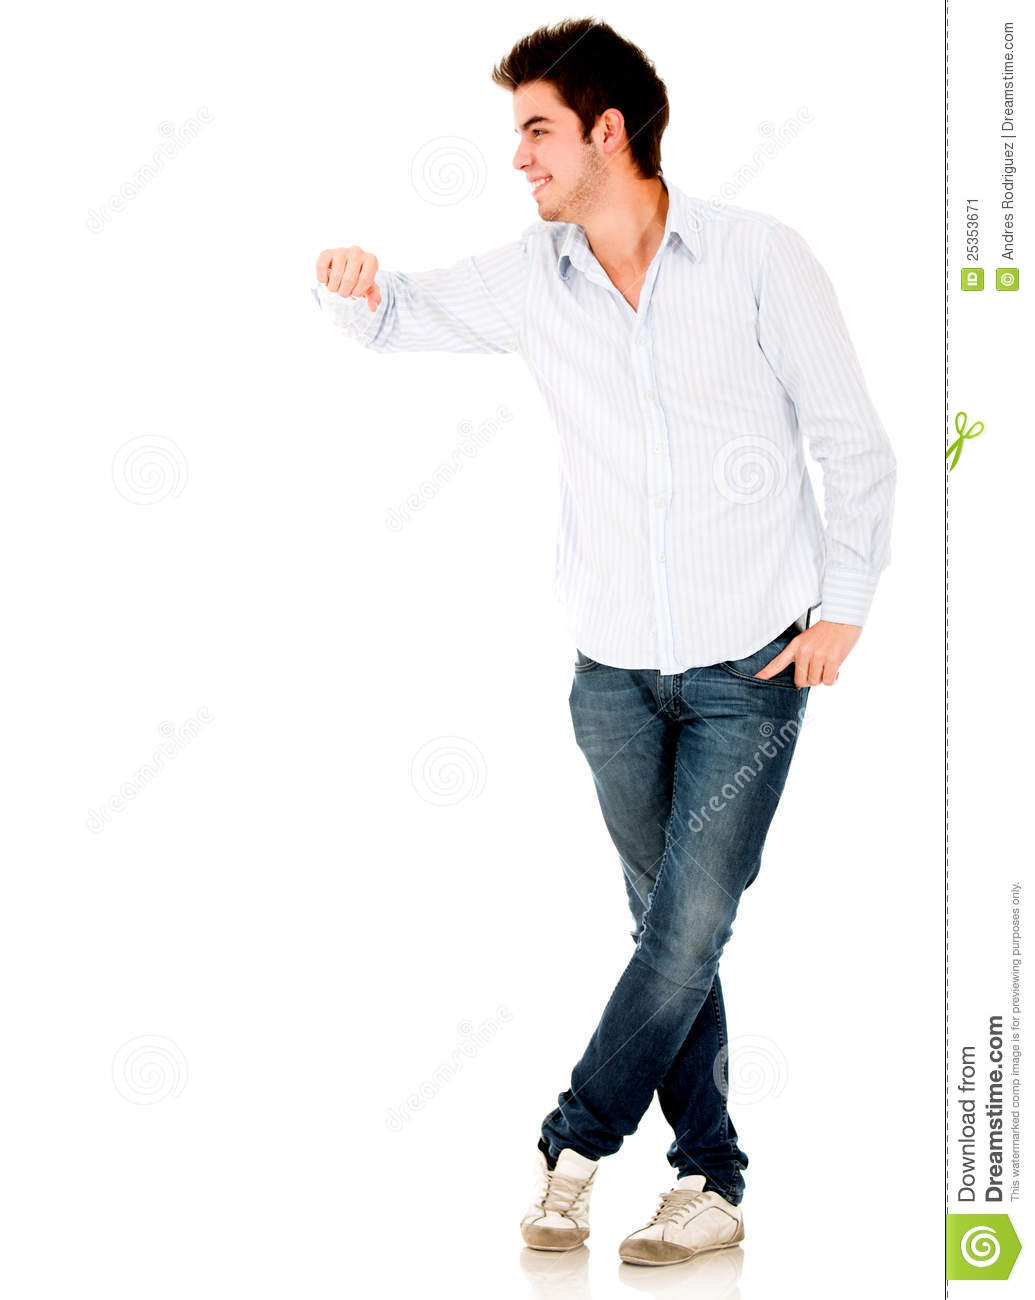 Bending Over Pictures, Images and Stock Photos - iStock |For Man Woman Leaning Forward